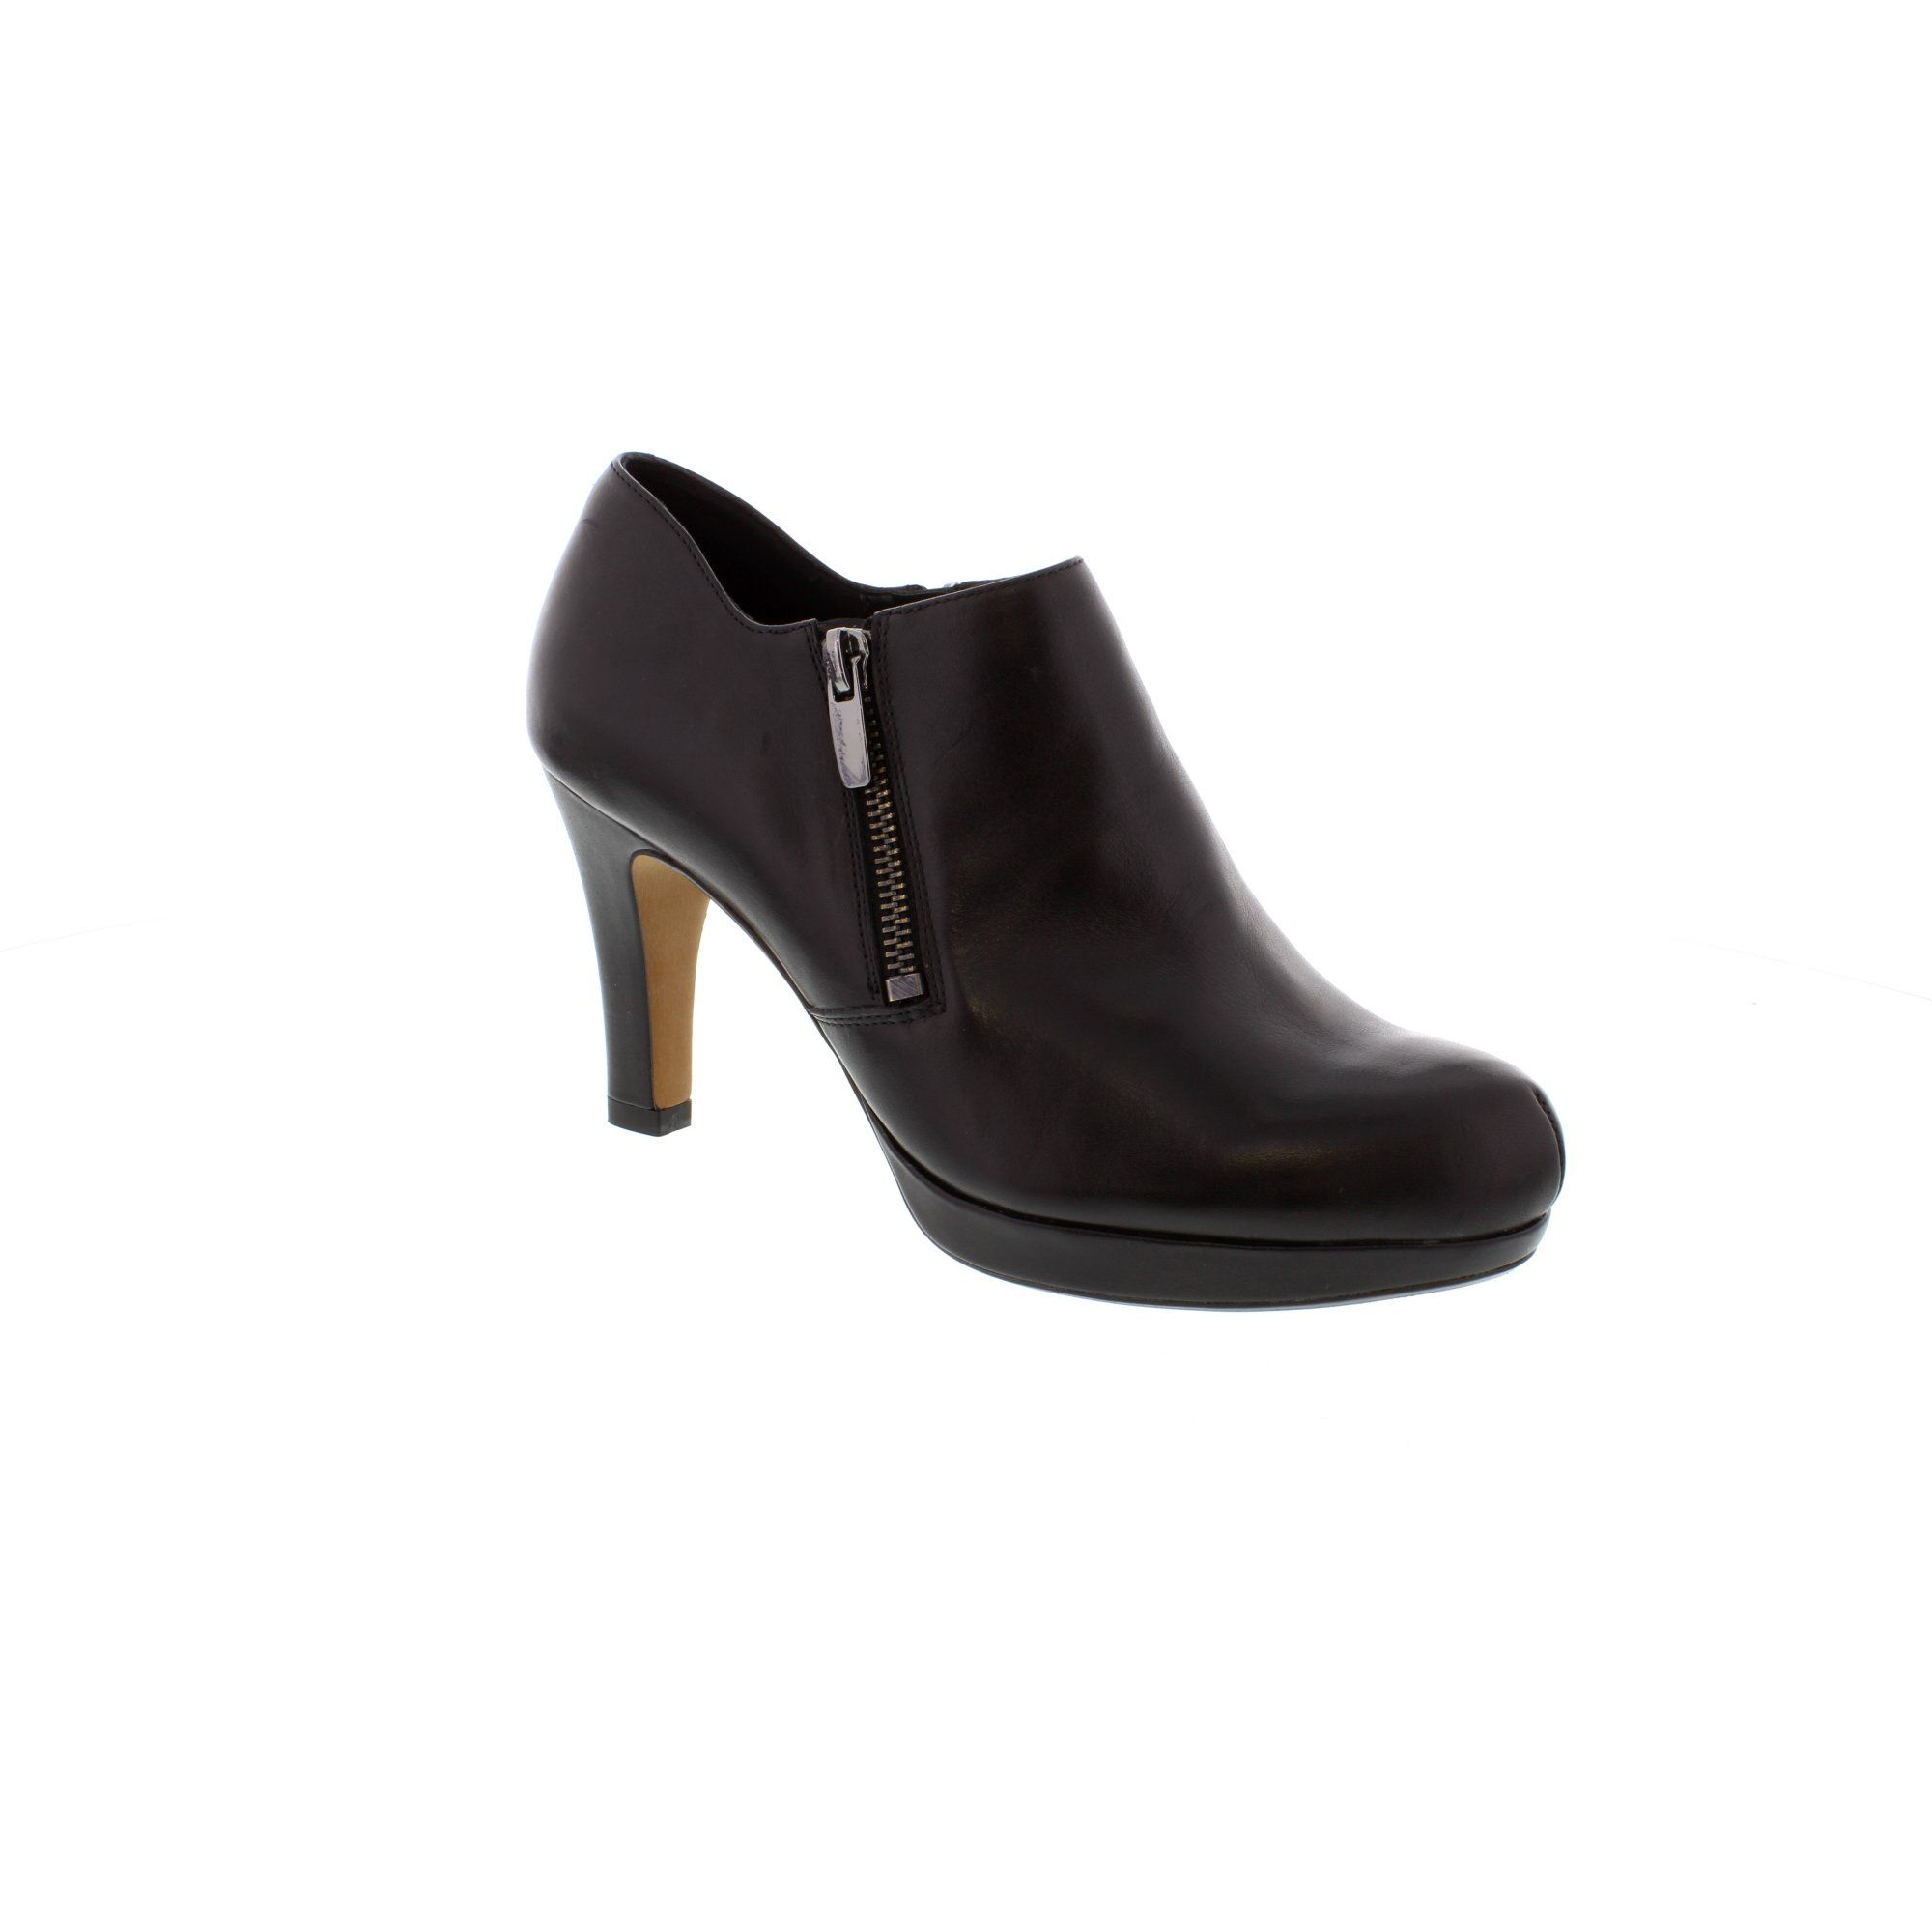 Clarks Amos Kendra Black Leather Ladies Shoe Boot